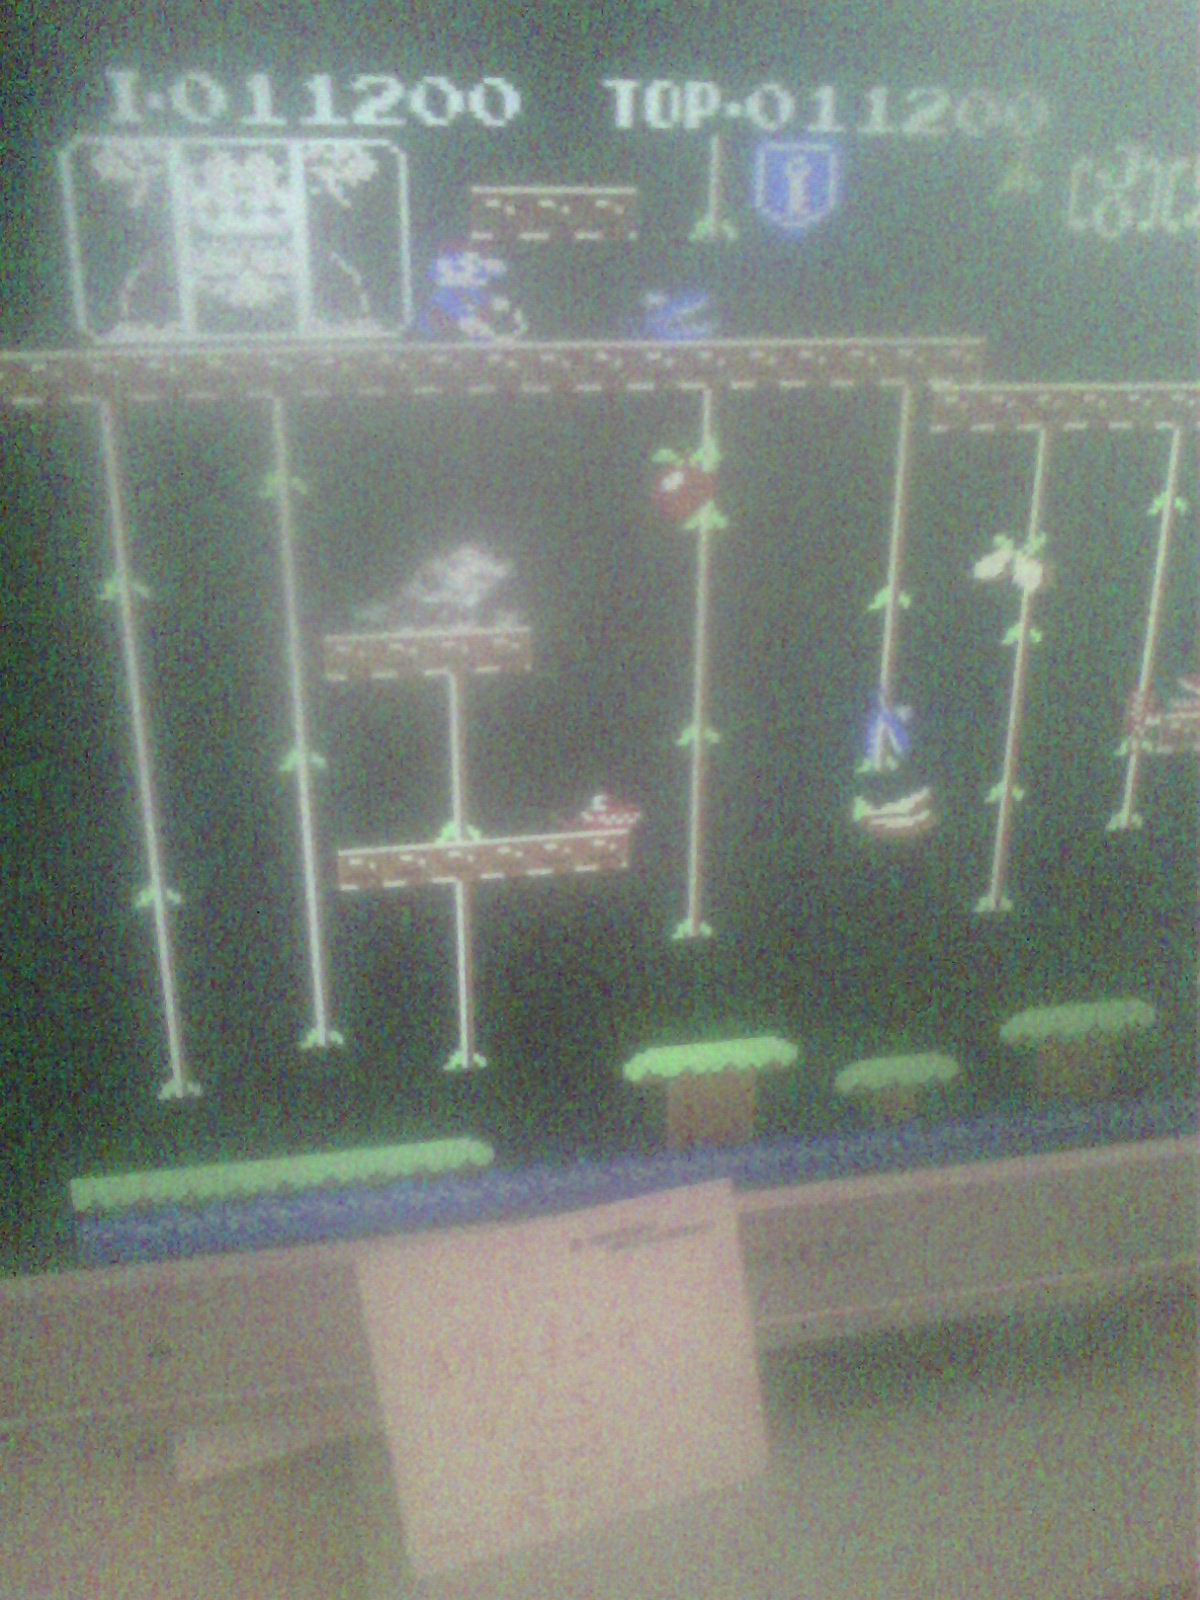 Donkey Kong Jr 11,200 points